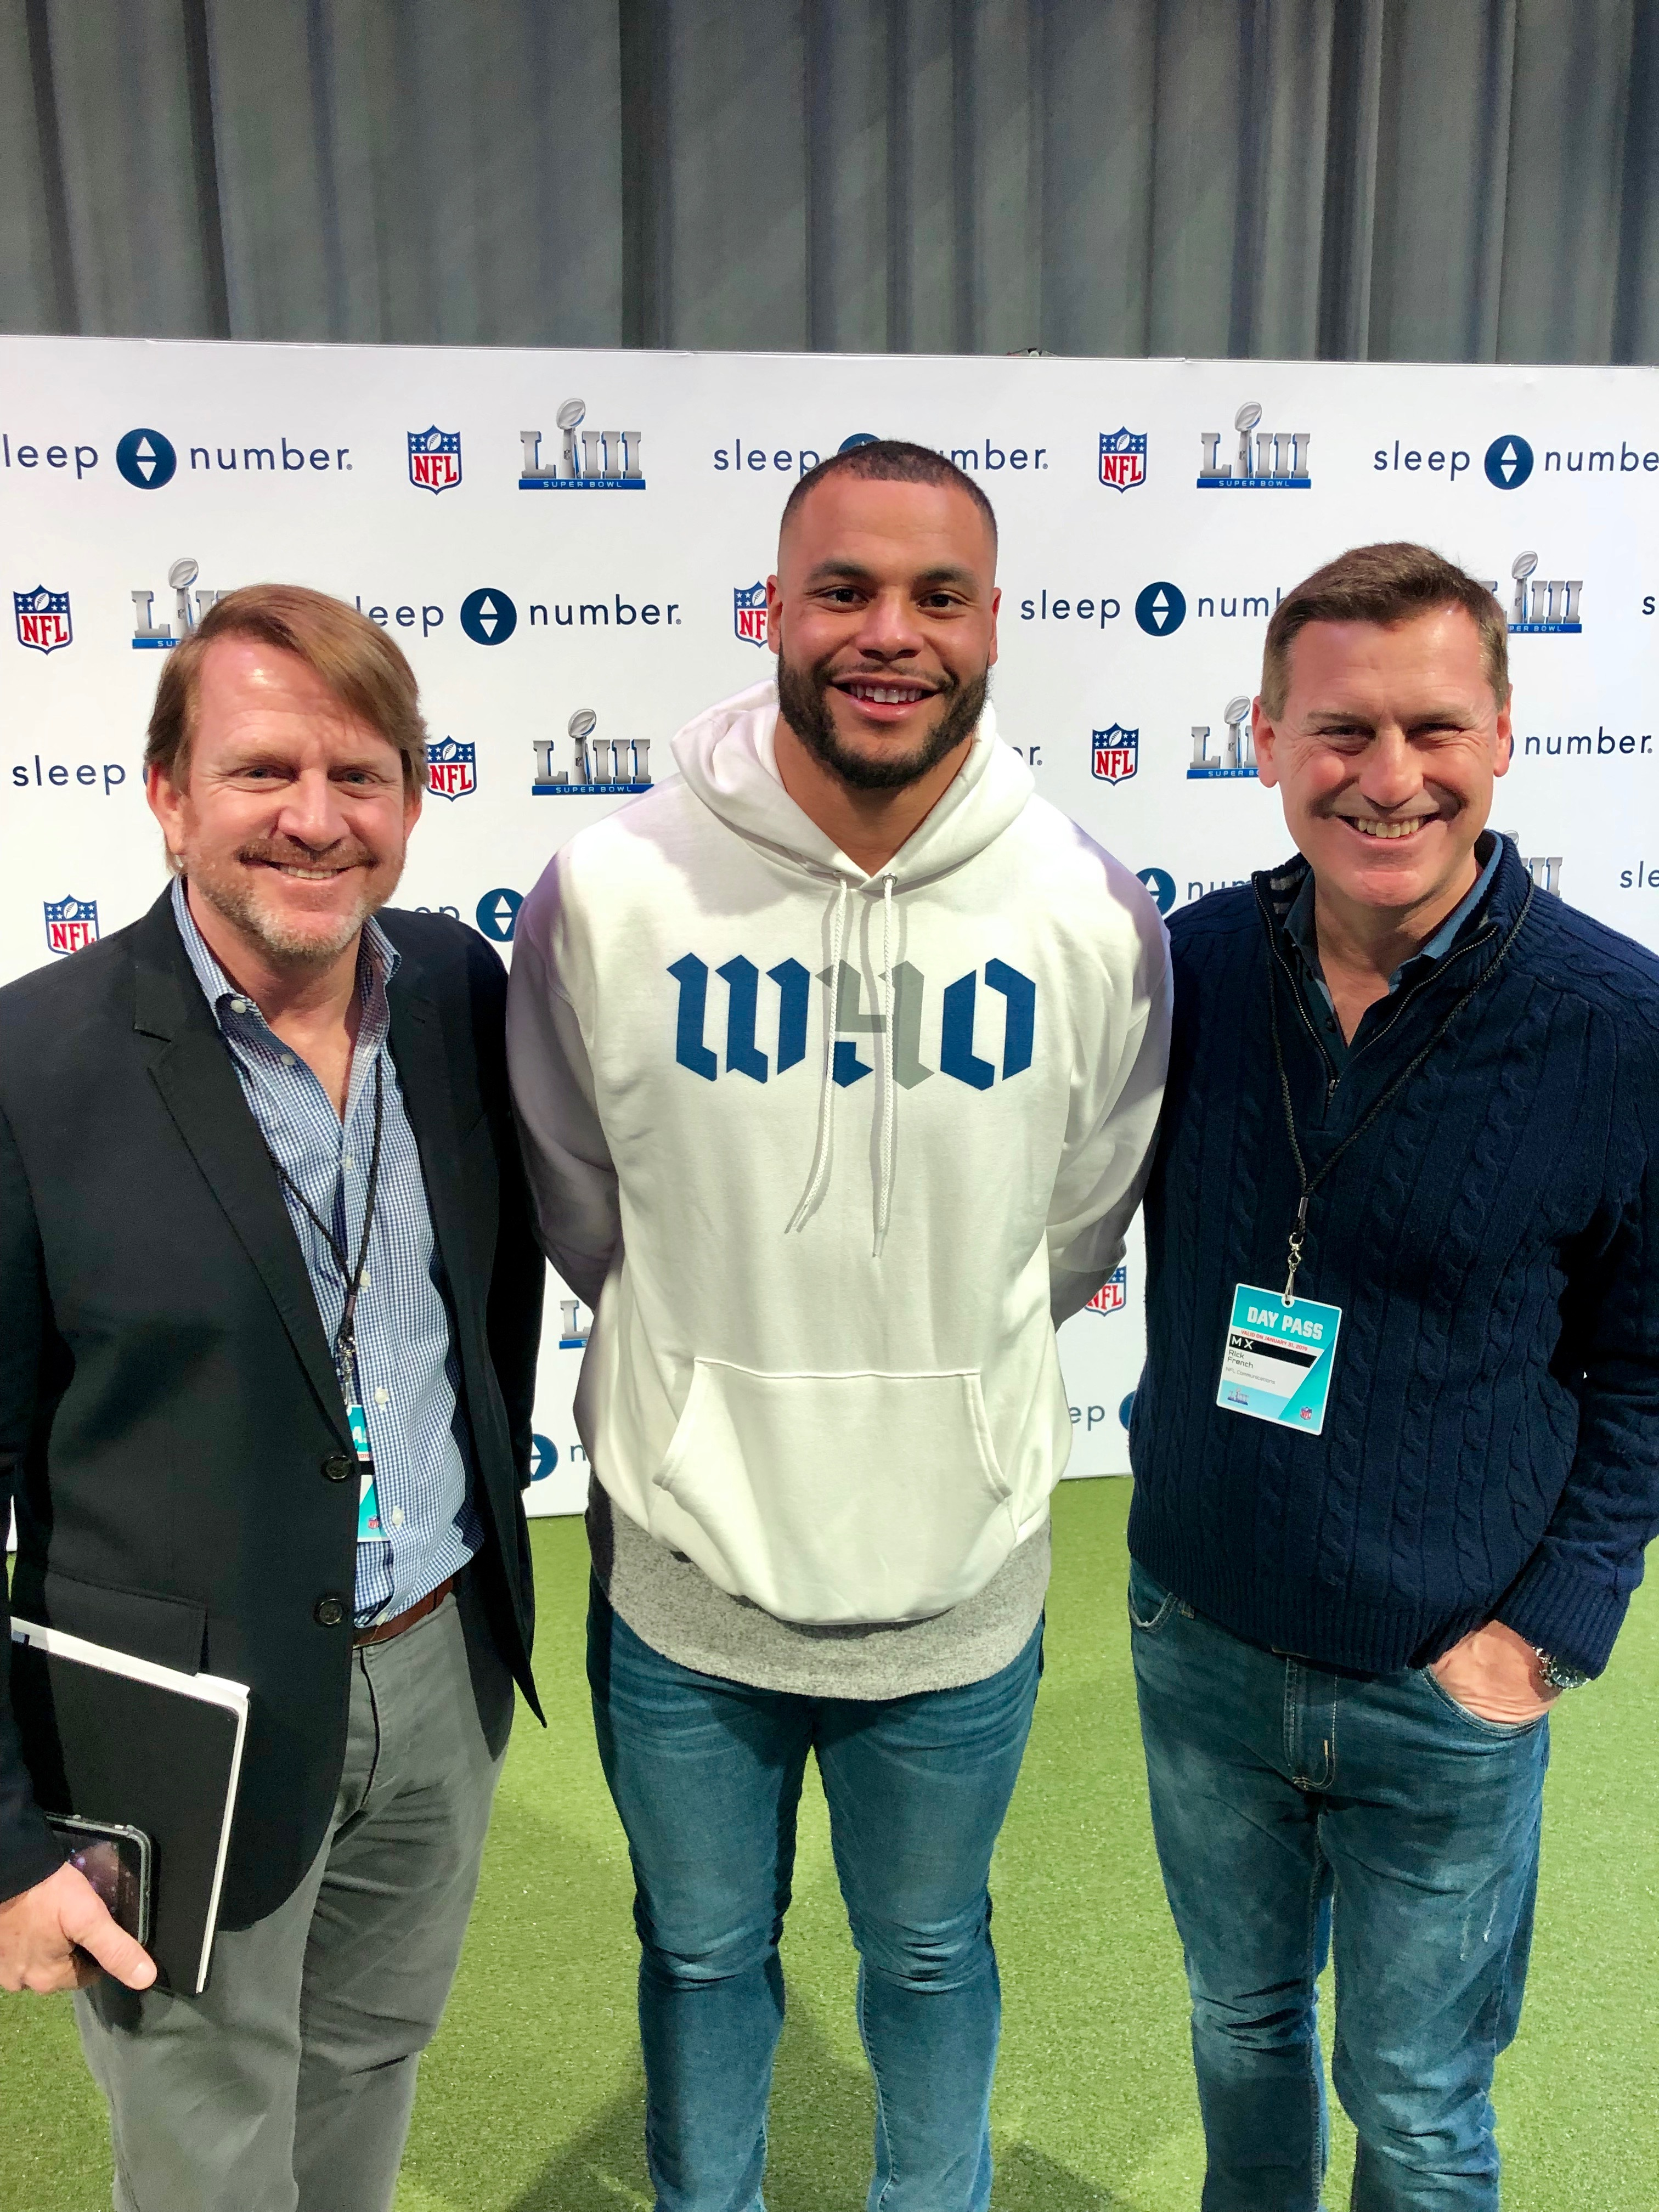 Rick French (right) with Charles Upchurch (left) of FWV and Dak Prescott, Quarterback of the Dallas Cowboys pose at the NFL Experience.